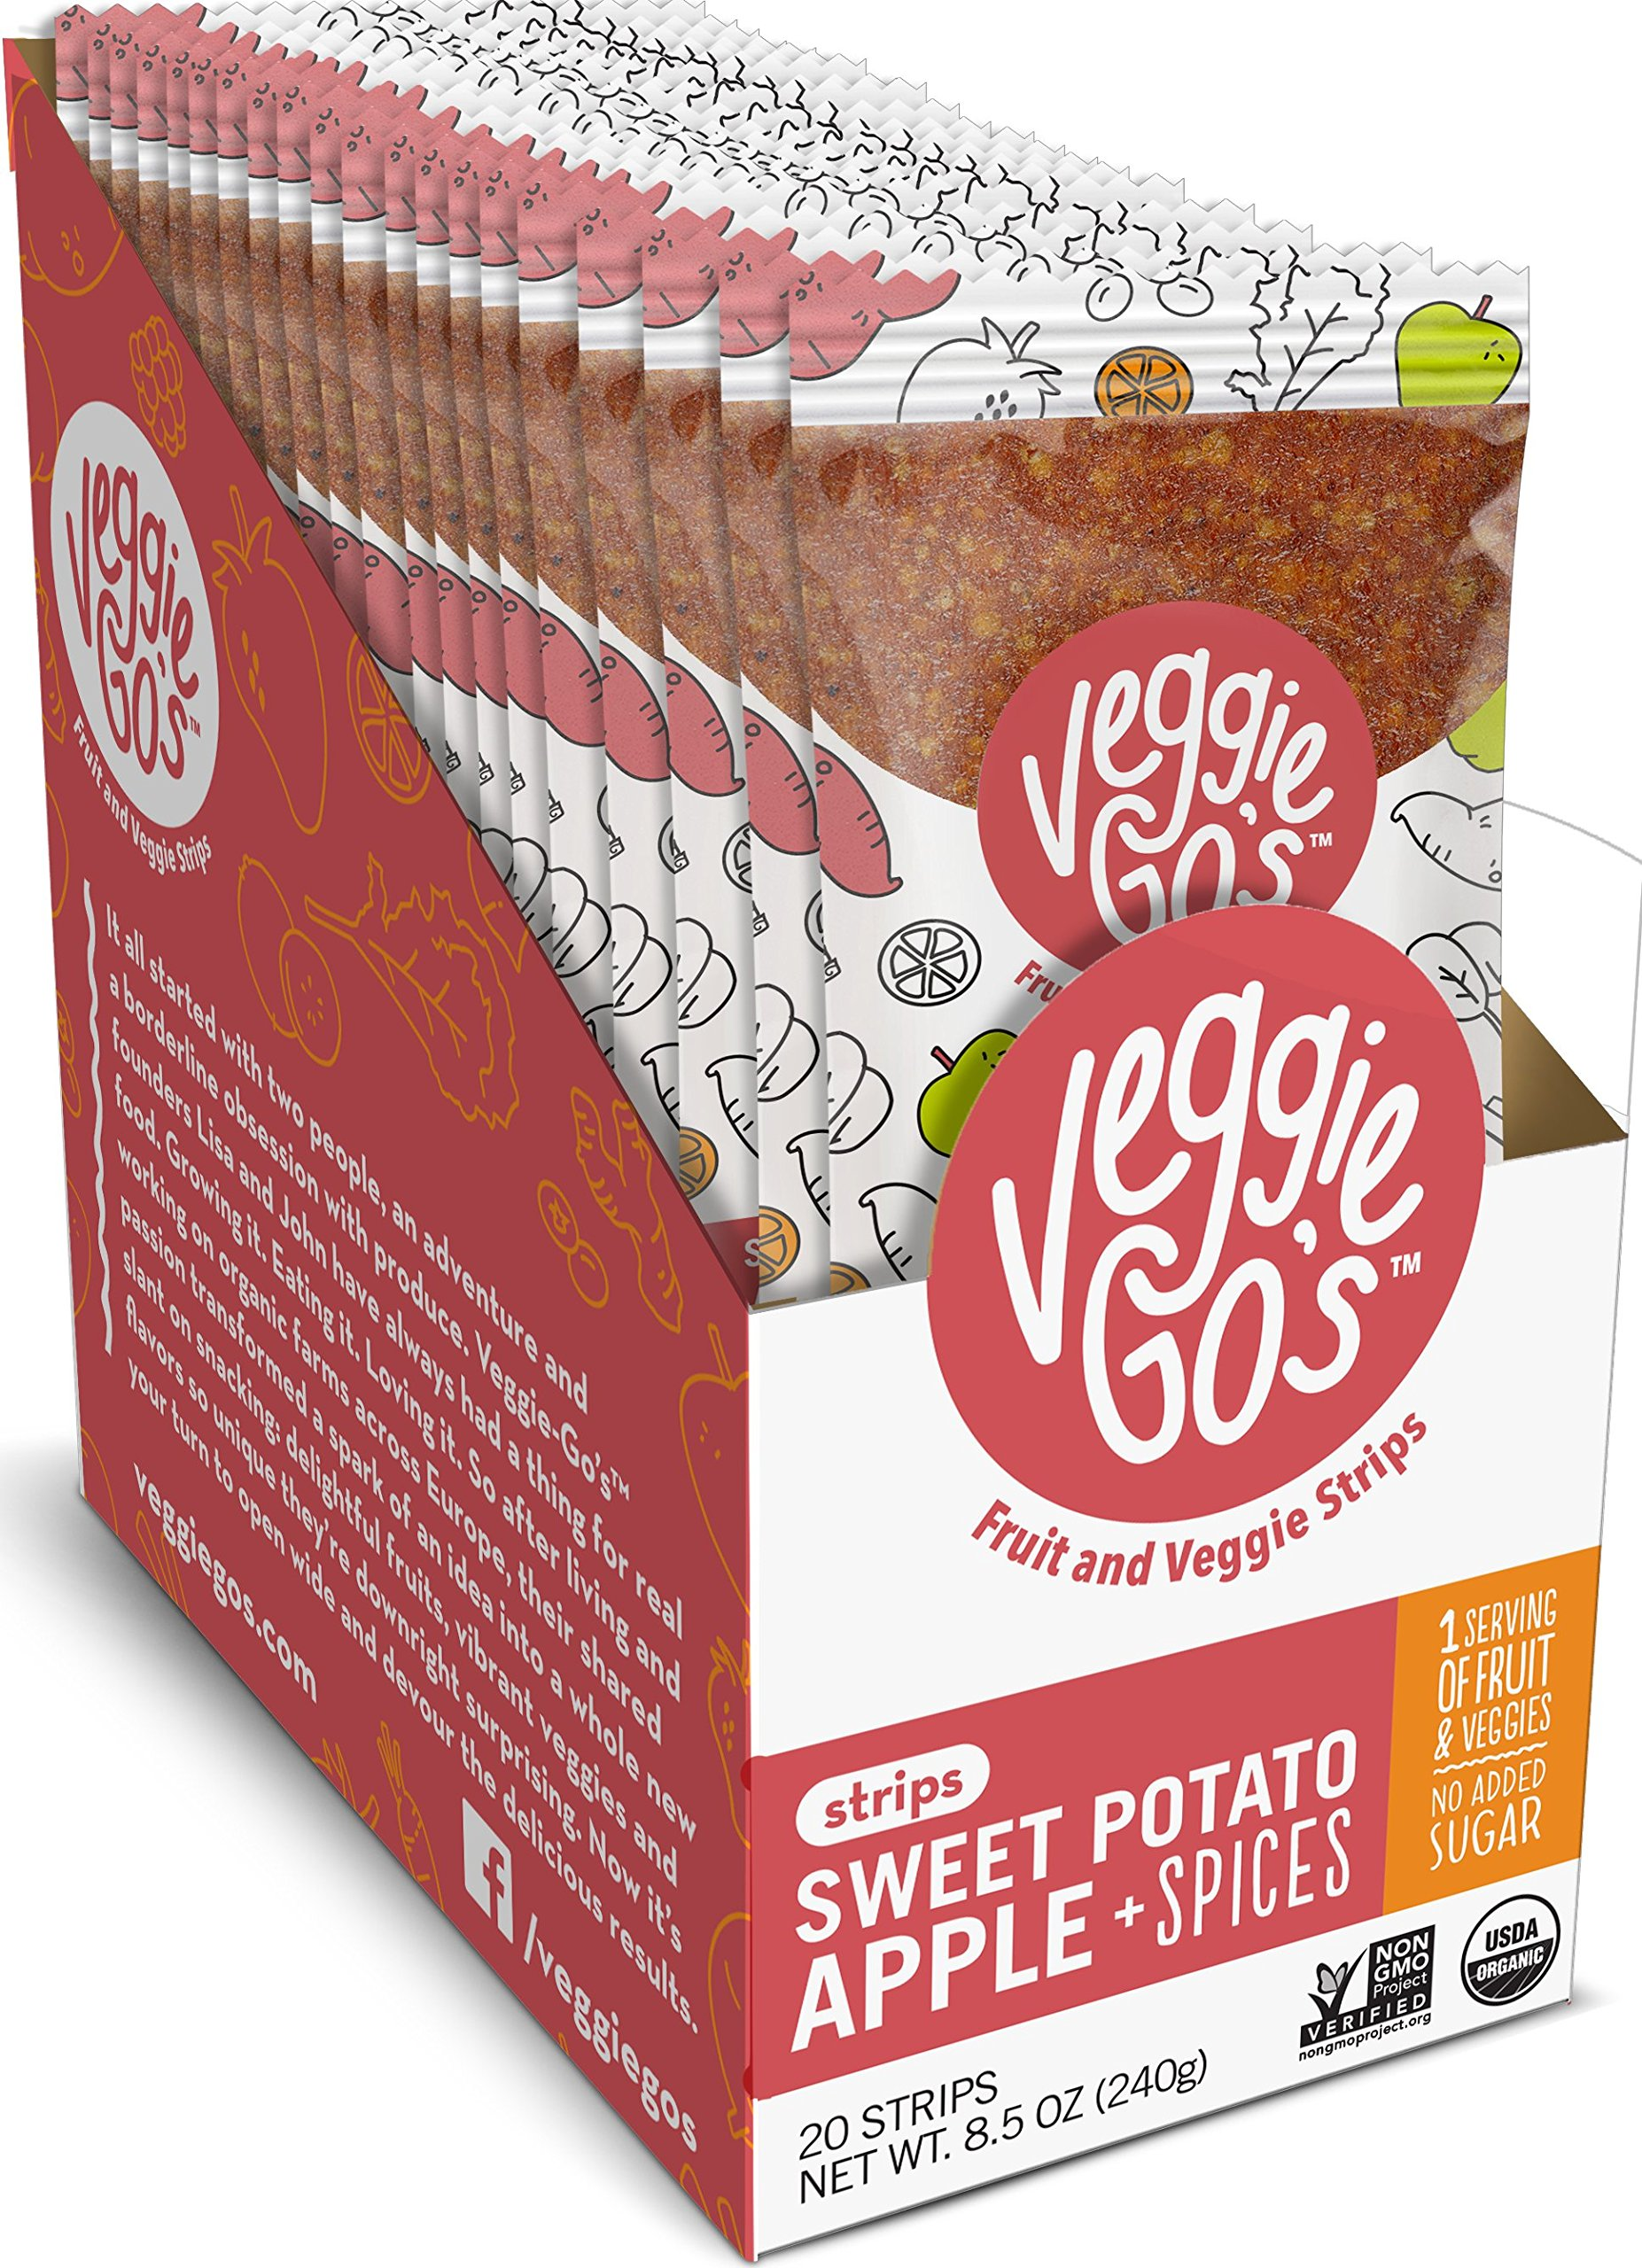 Veggie-Go's Organic Fruit and Veggie Strip with No Added Sugar, Sweet Potato, Apple, Spices, 0.425 Ounce (Pack of 20) by Veggie-Go's